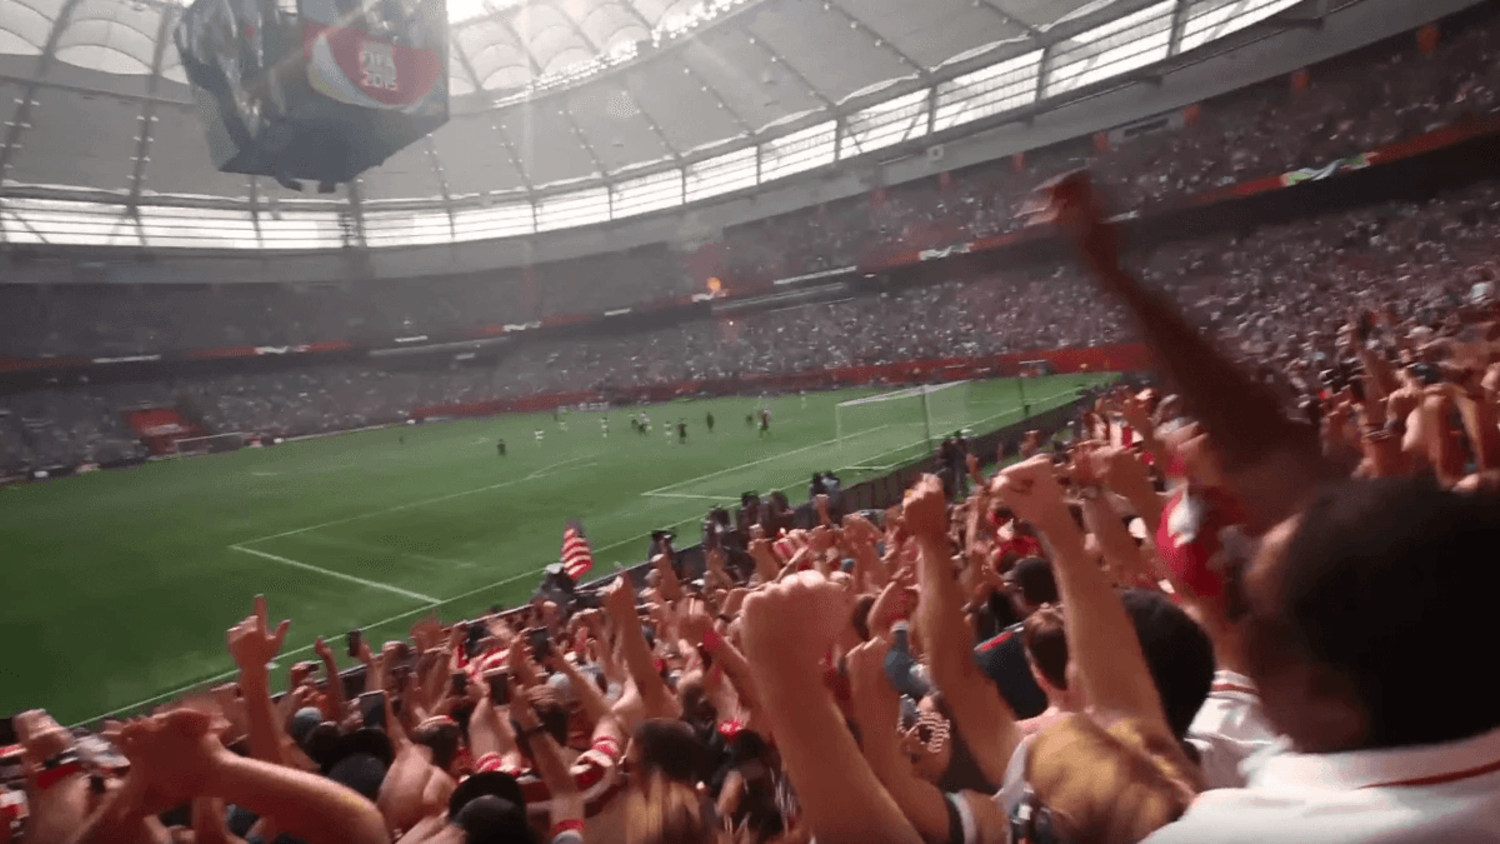 The Rail: Rescuing Clubs, Europa League Adventures and the Women's World Cup